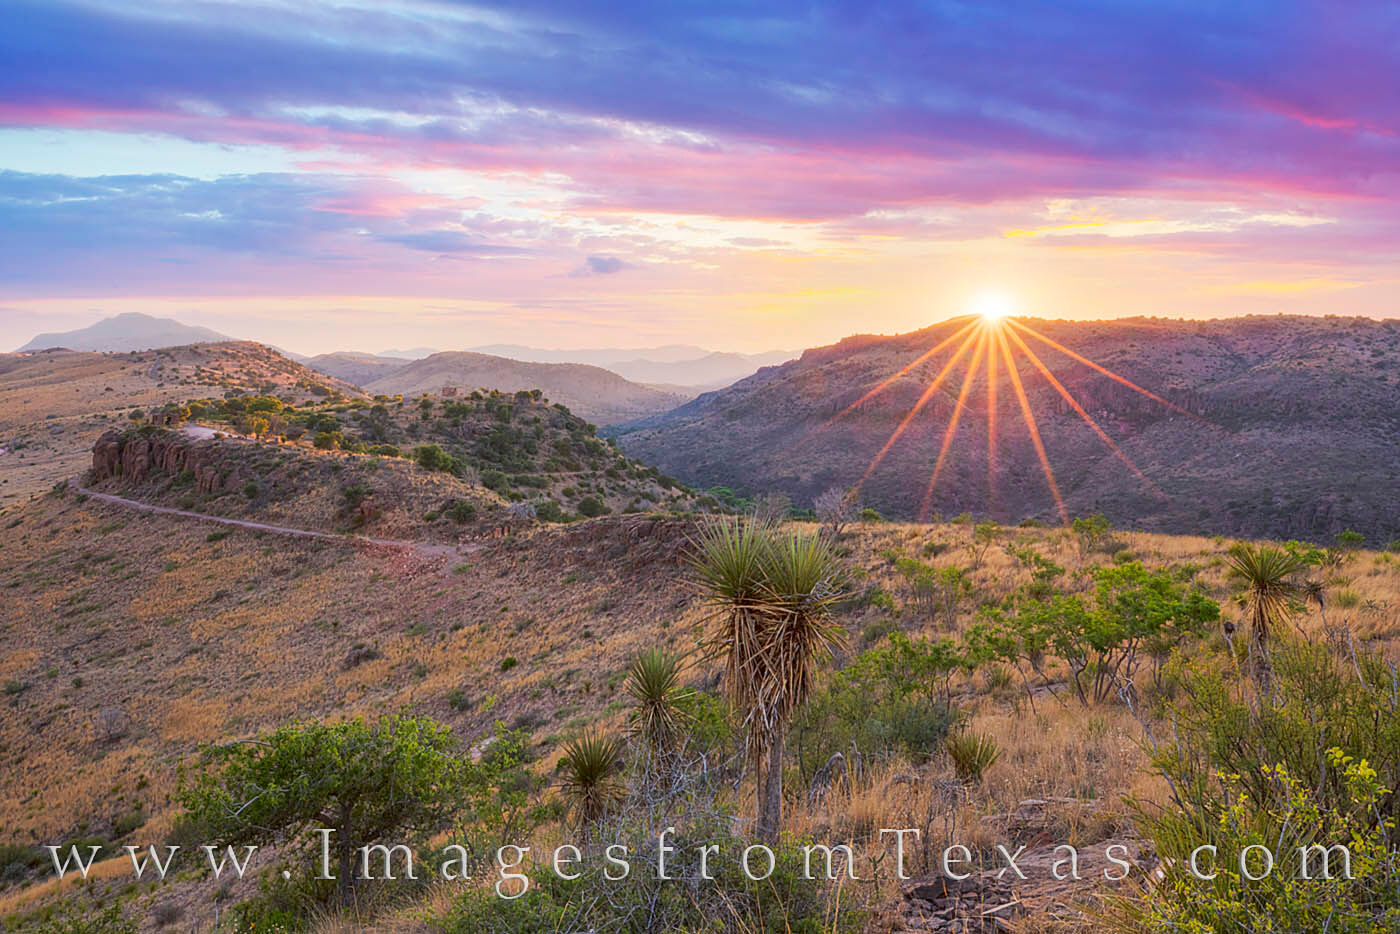 davis mountains, davis mountains state park, fort davis, CCC trail, west texas, texas images, texas sunsets, photo